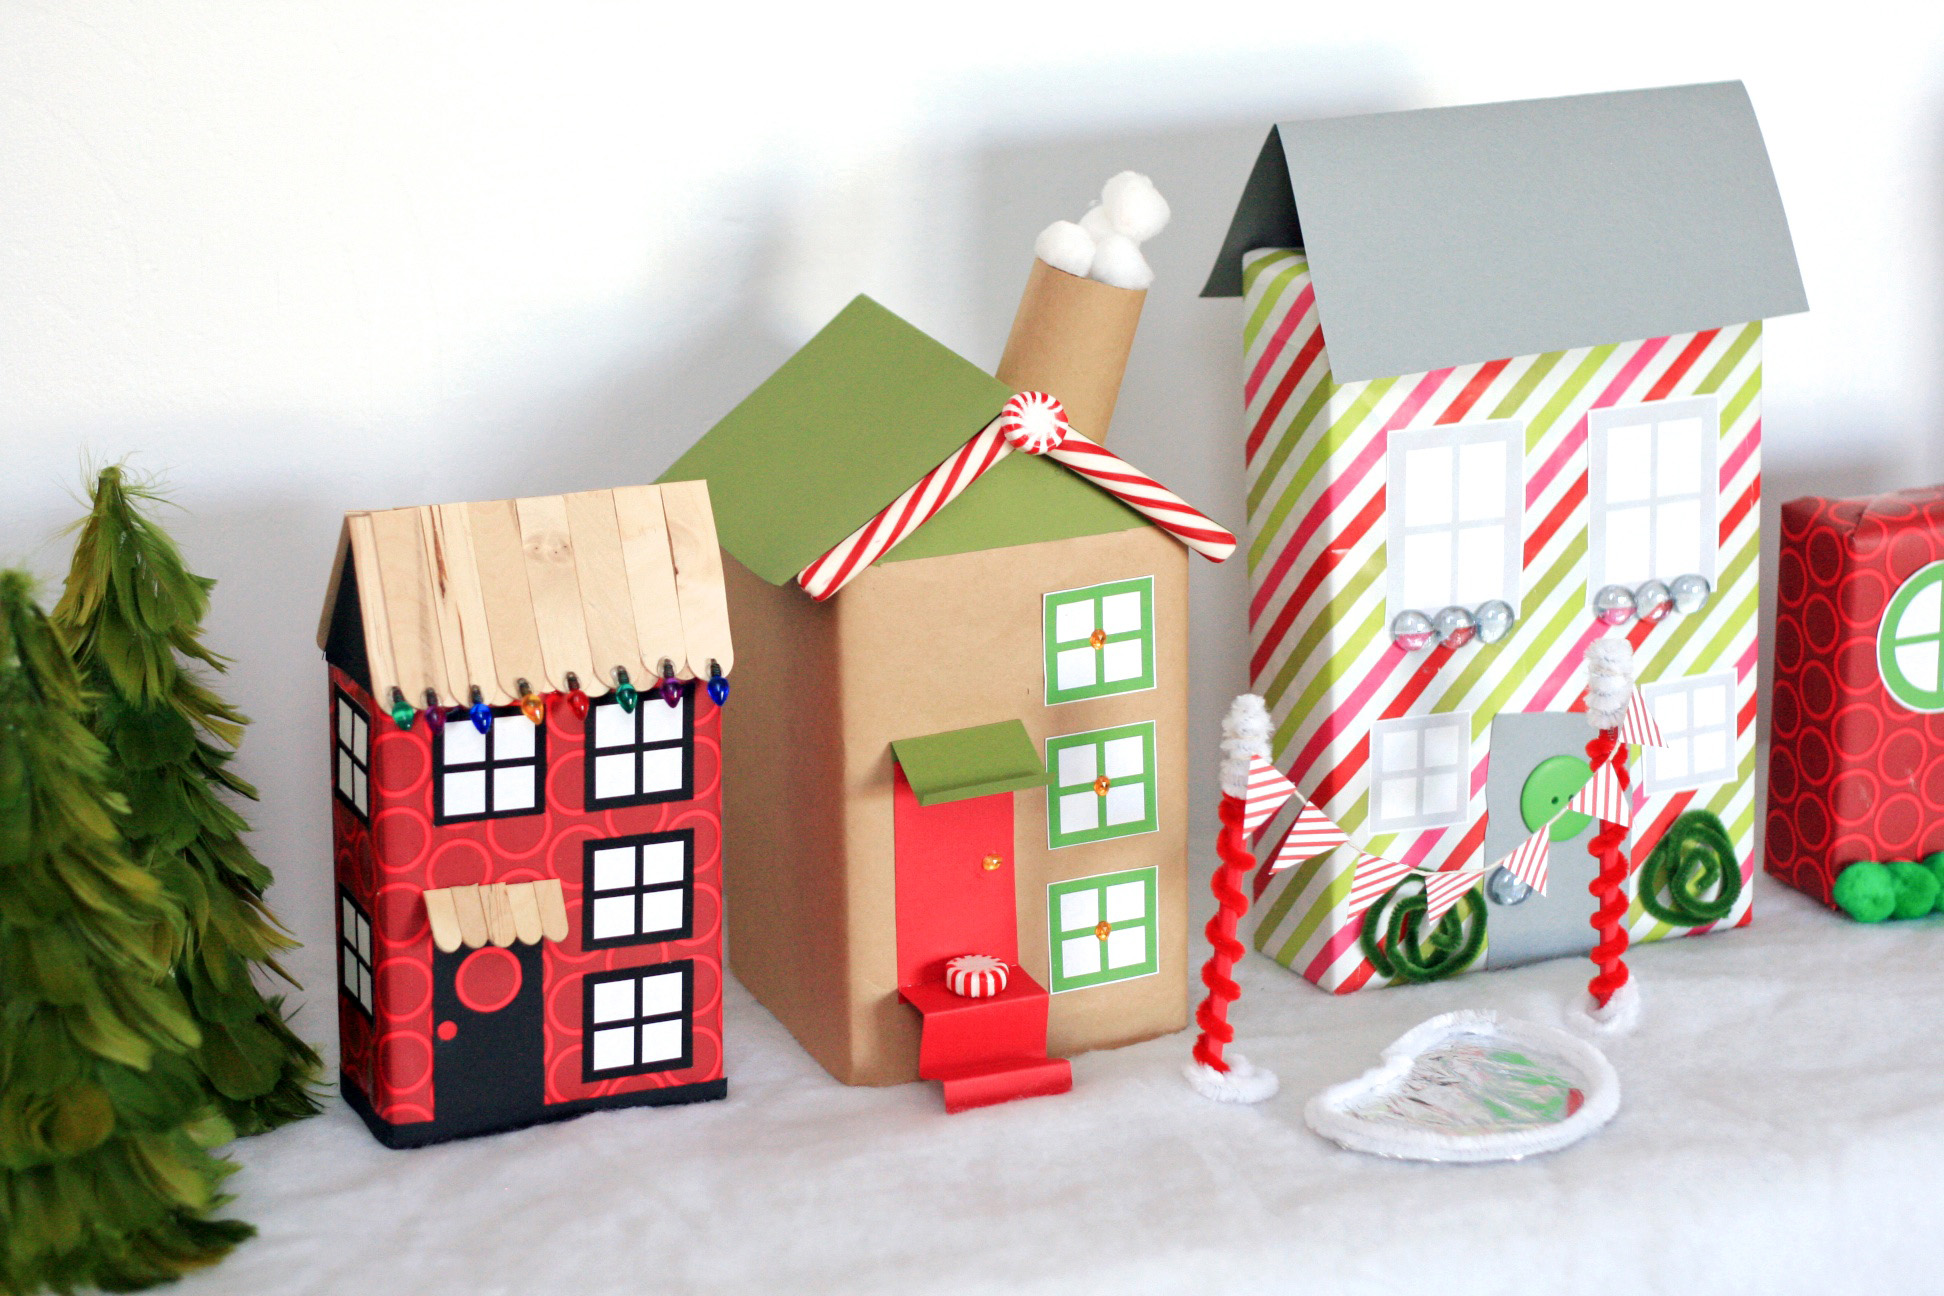 cereal box decors in Christmas DIY decorations for kids bedrooms | lovelyspaces.com